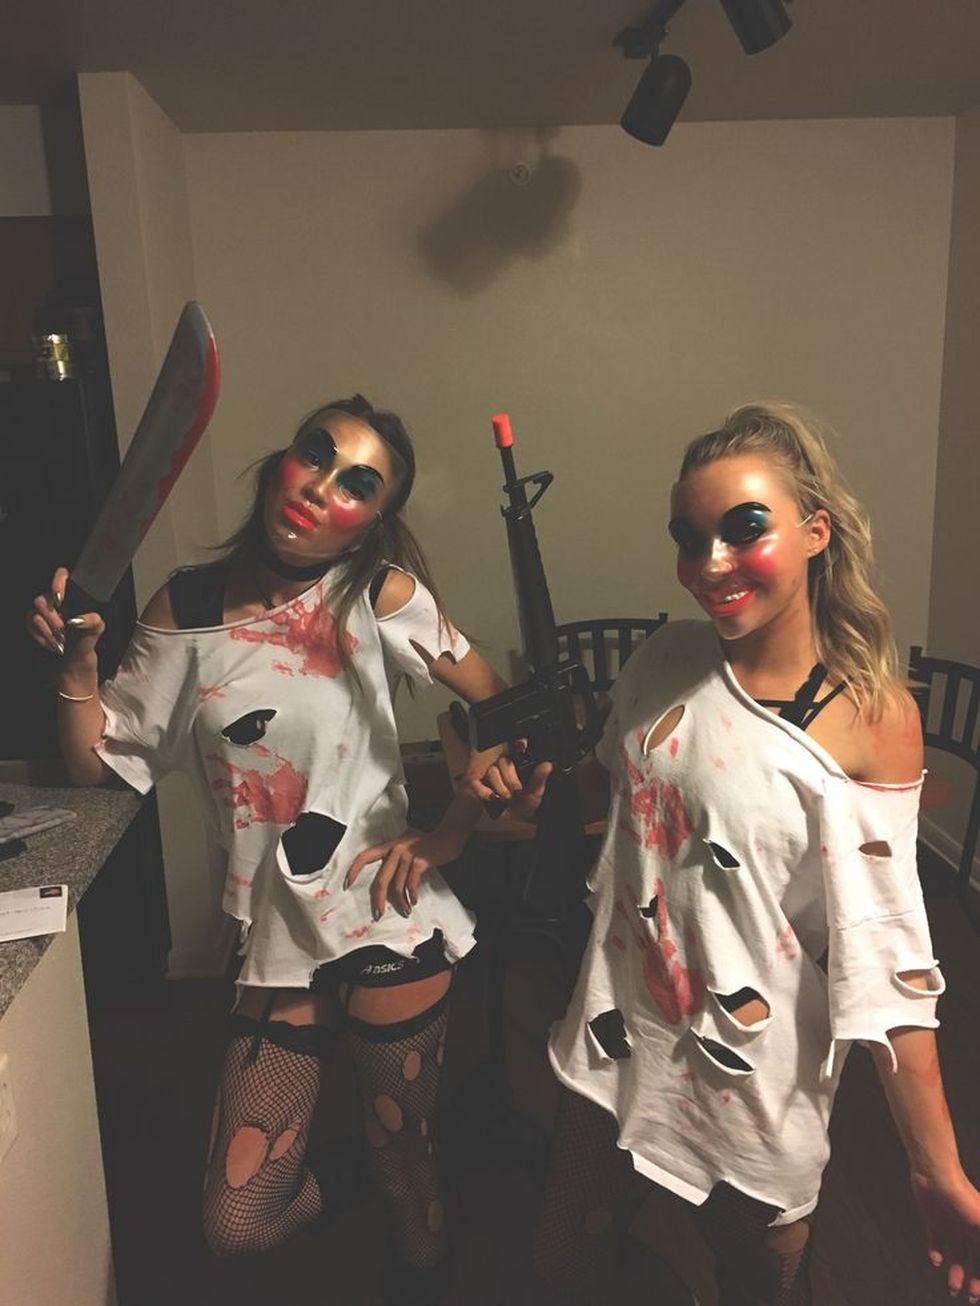 Best Halloween Outfits For Couples.30 Best Halloween Costumes Outfits 2017 On Internet